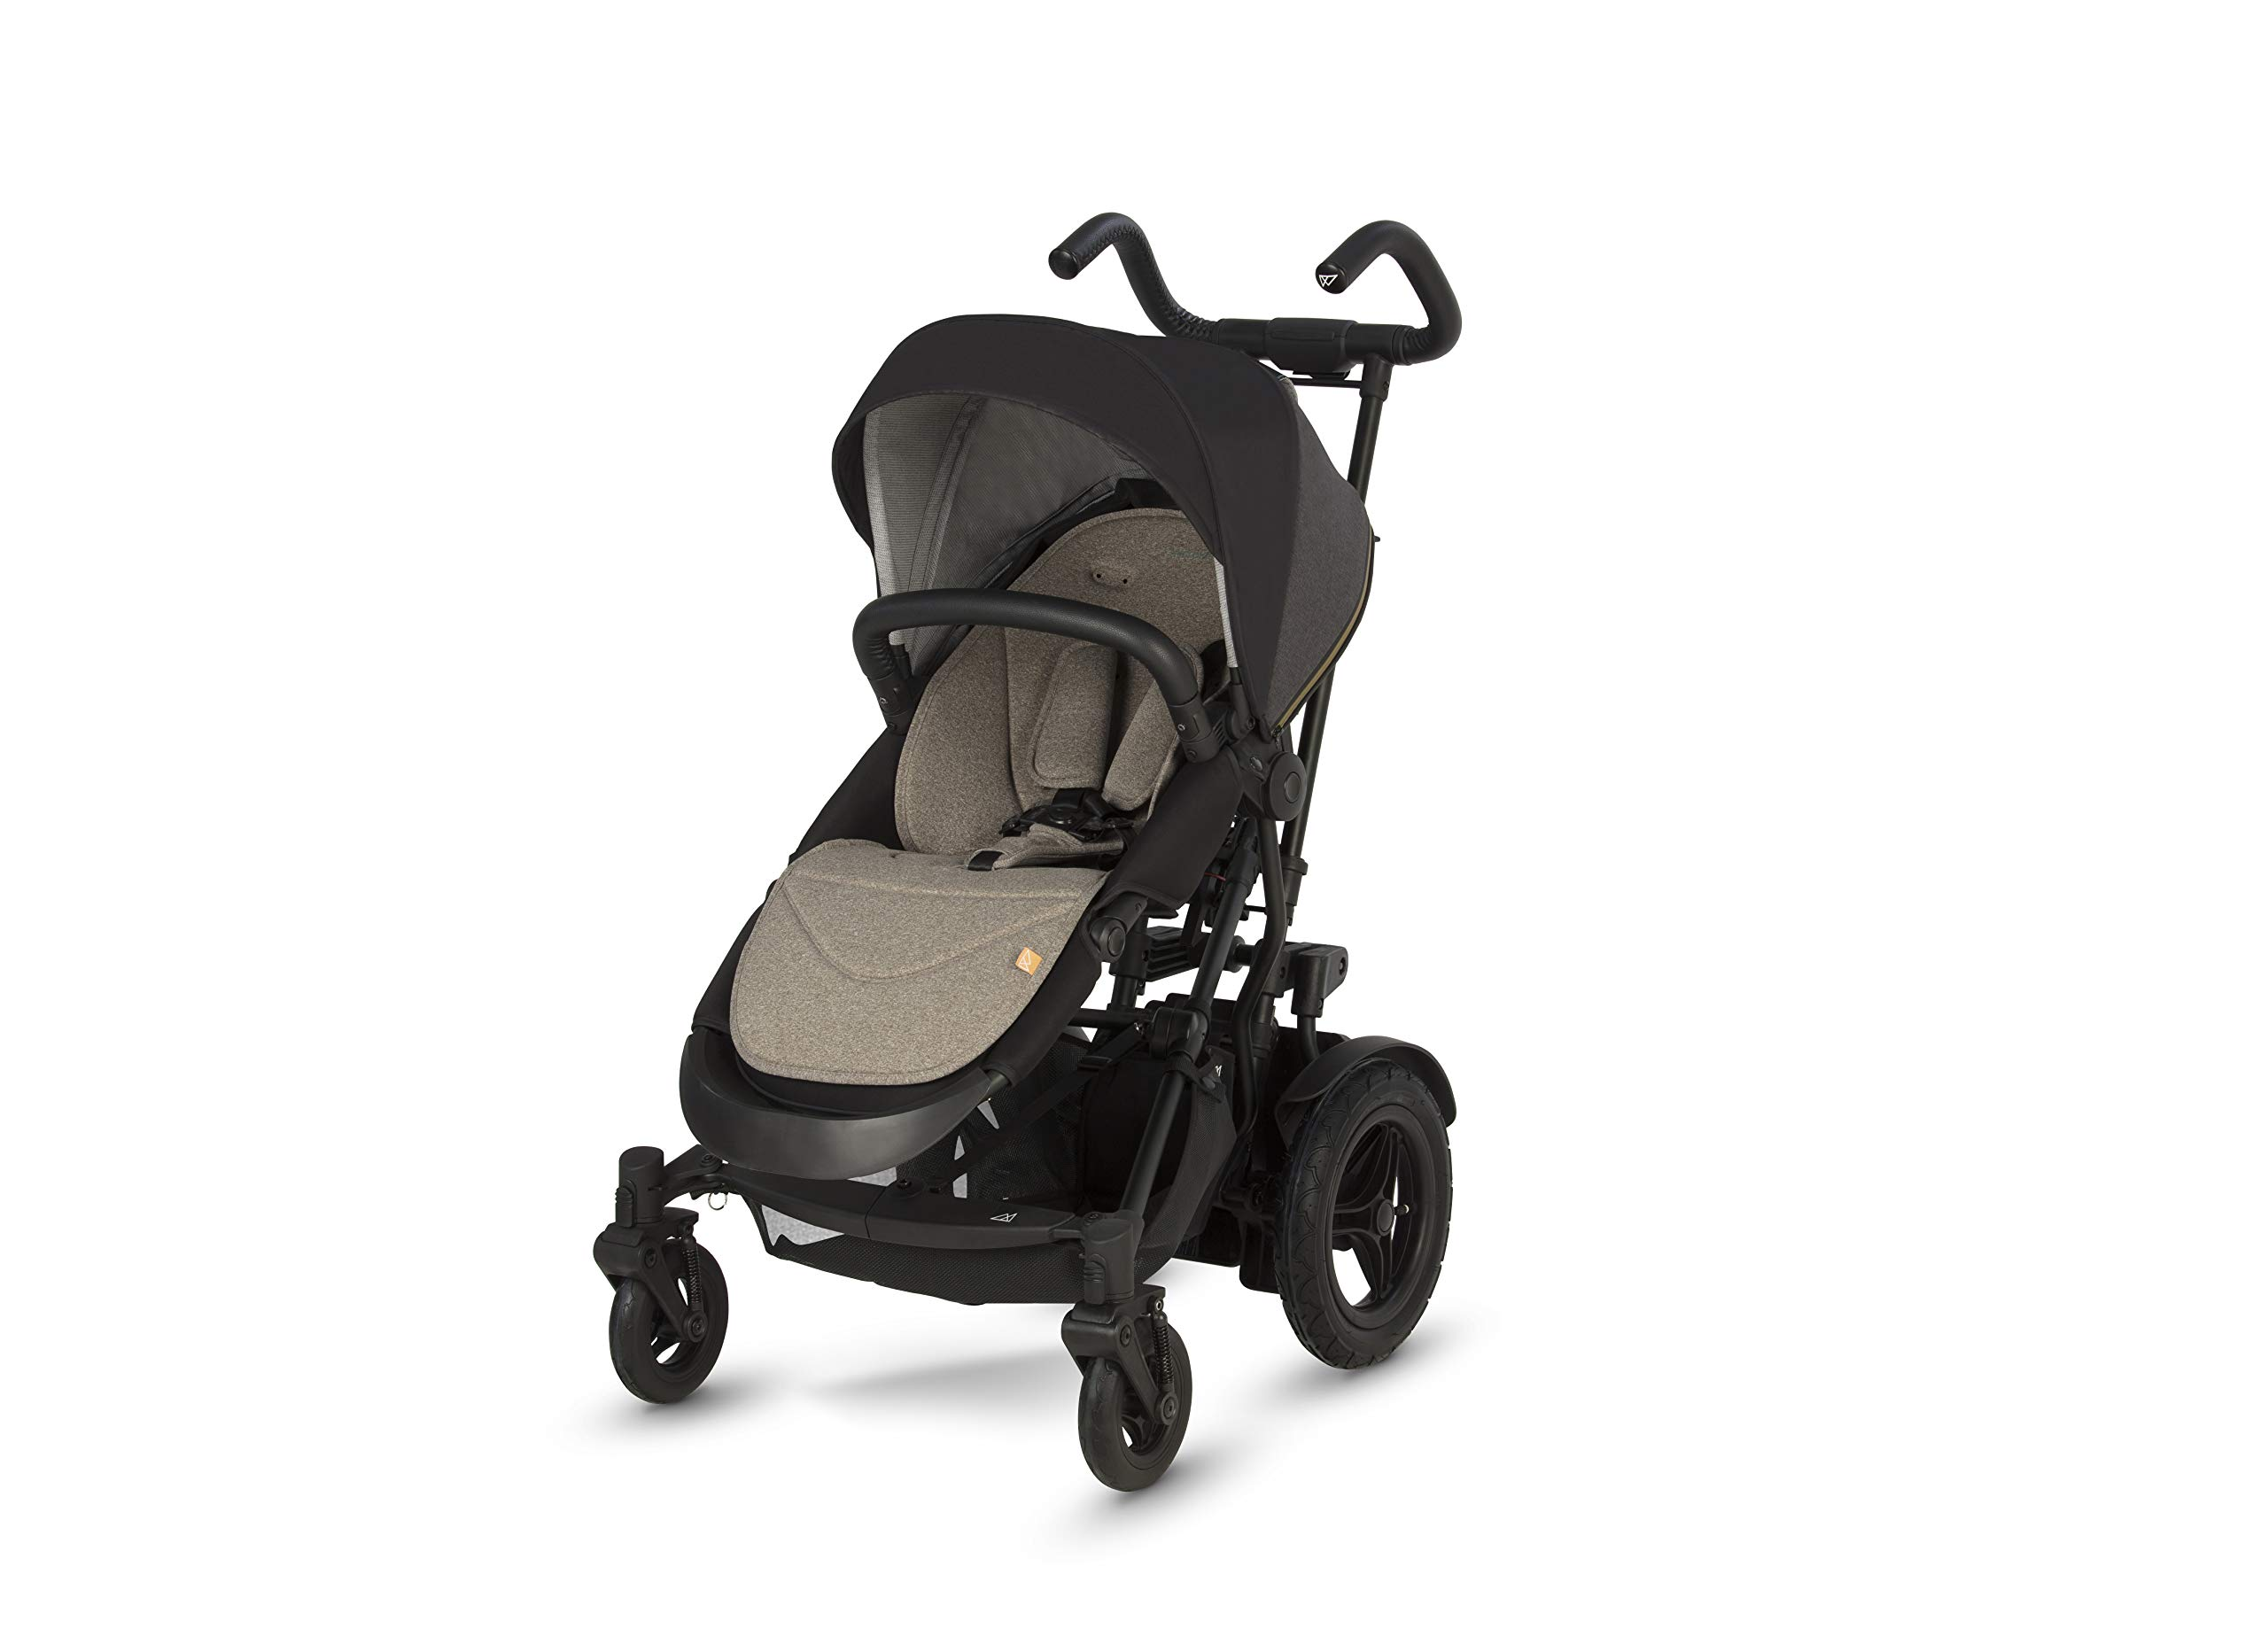 Micralite TwoFold Pushchair - Carbon. Suitable from 6 Months to 4 Years. Add Carrycot to Convert to Travel System Micralite QUICK FOLD - The TwoFold folds into one piece, with one movement. Once folded it free stands for ease of storage at home or out and about. To transport when not in use simply drag it along behind you. ALL-TERRAIN WHEELS - Large air filled back tyres, high mud guards and great ground clearance mean you can still go anywhere even with two in tow. You don't have to worry about getting a puncture either as the pneumatic tyres are lined with Kevlar - the same fibre used in bullet proof vests! WEATHERPROOF FABRICS - Dressed with signature Micralite high quality weatherproof fabrics, the hood of the TwoFold turns water just aswell as it deflects the sun's harmful rays. We also include a storm cover for more extreme weather - so nothing can stop you and your little one from getting out there. 1